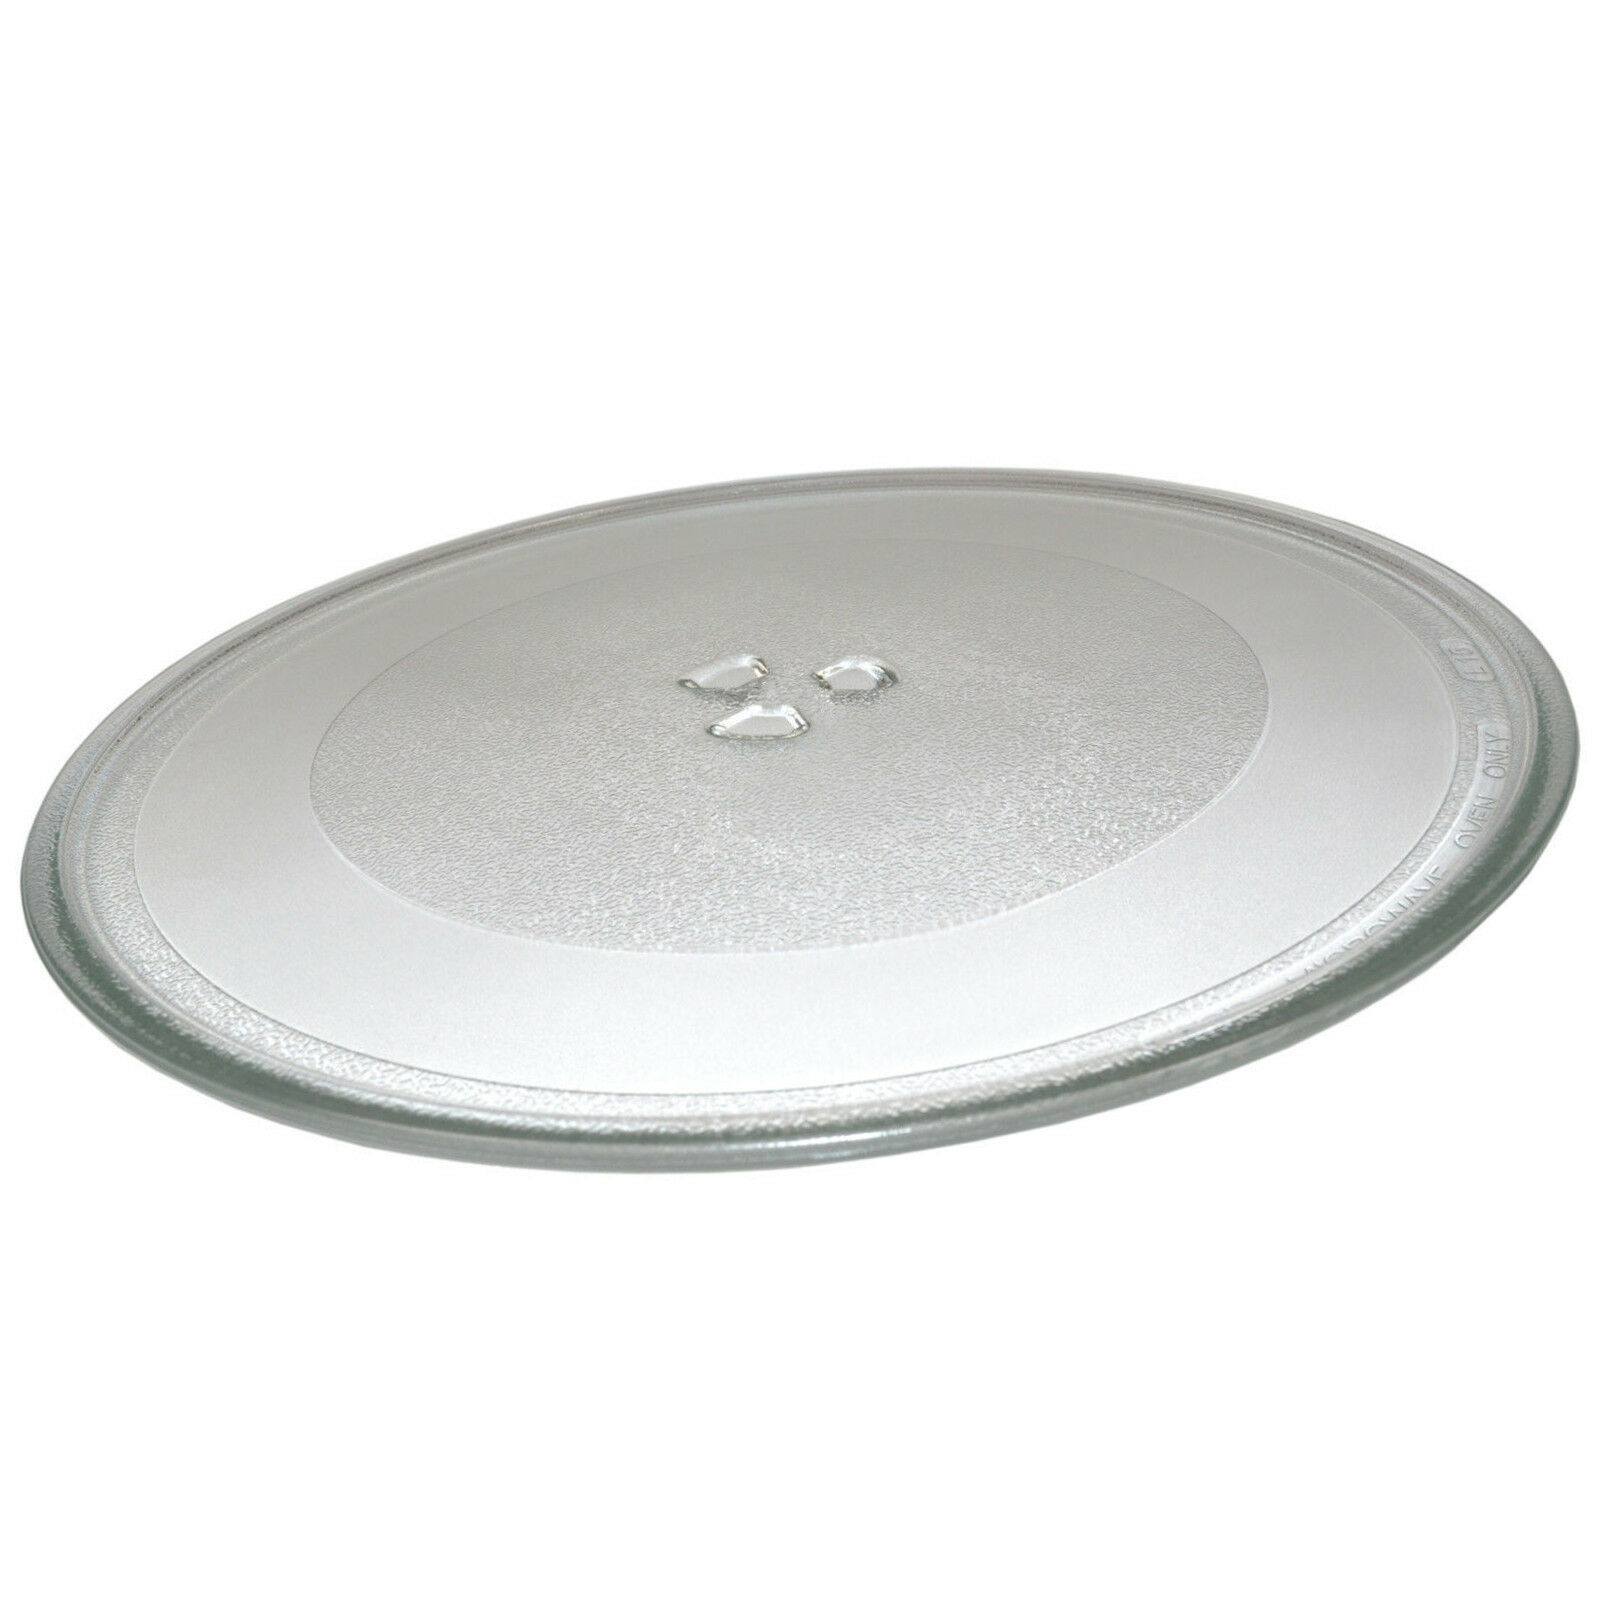 12-3//8 inch Glass Turntable Tray for GE JES Series Microwave Oven Cooking Plate